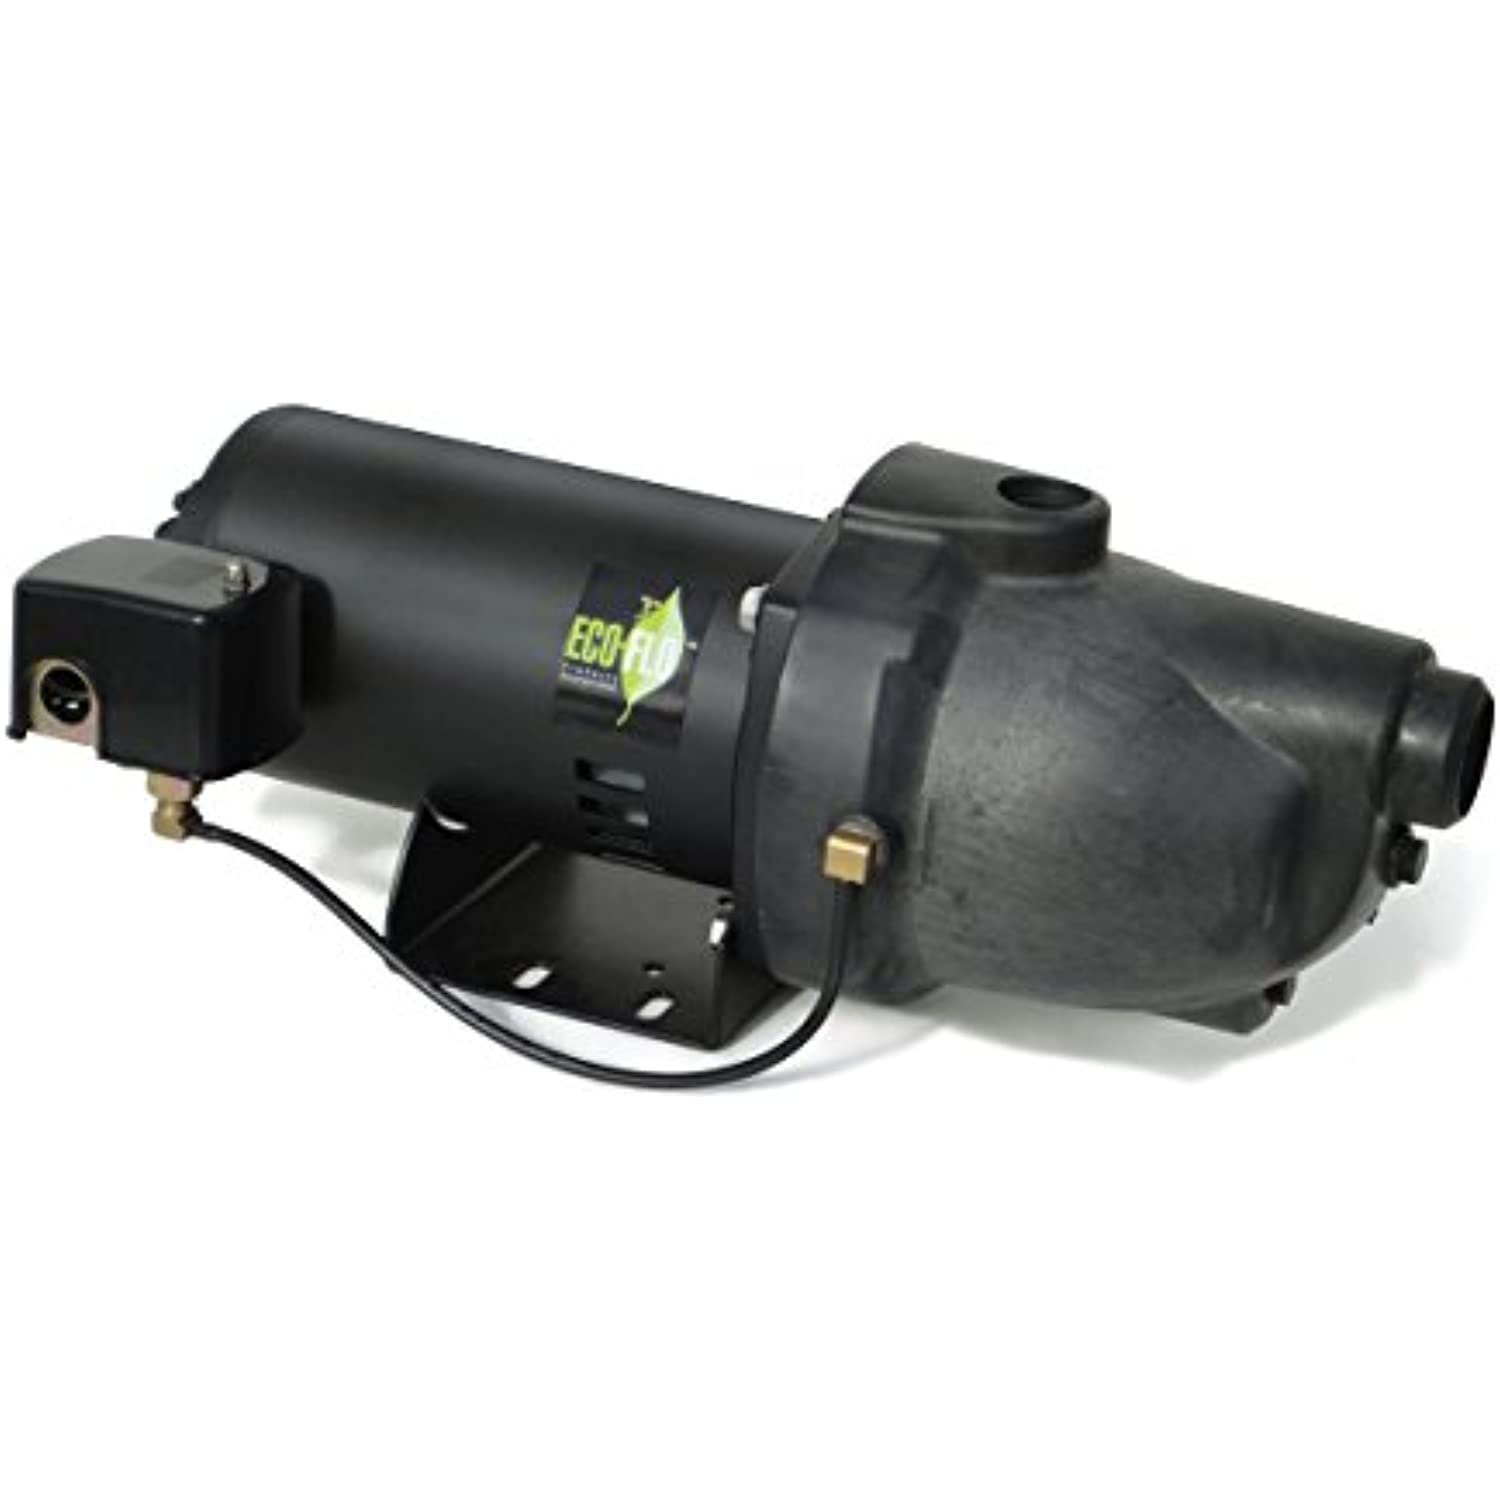 ECO-FLO Products EFSWJ7P Shallow Water Well Jet Pump, 3/4 HP, 14.1 GPM